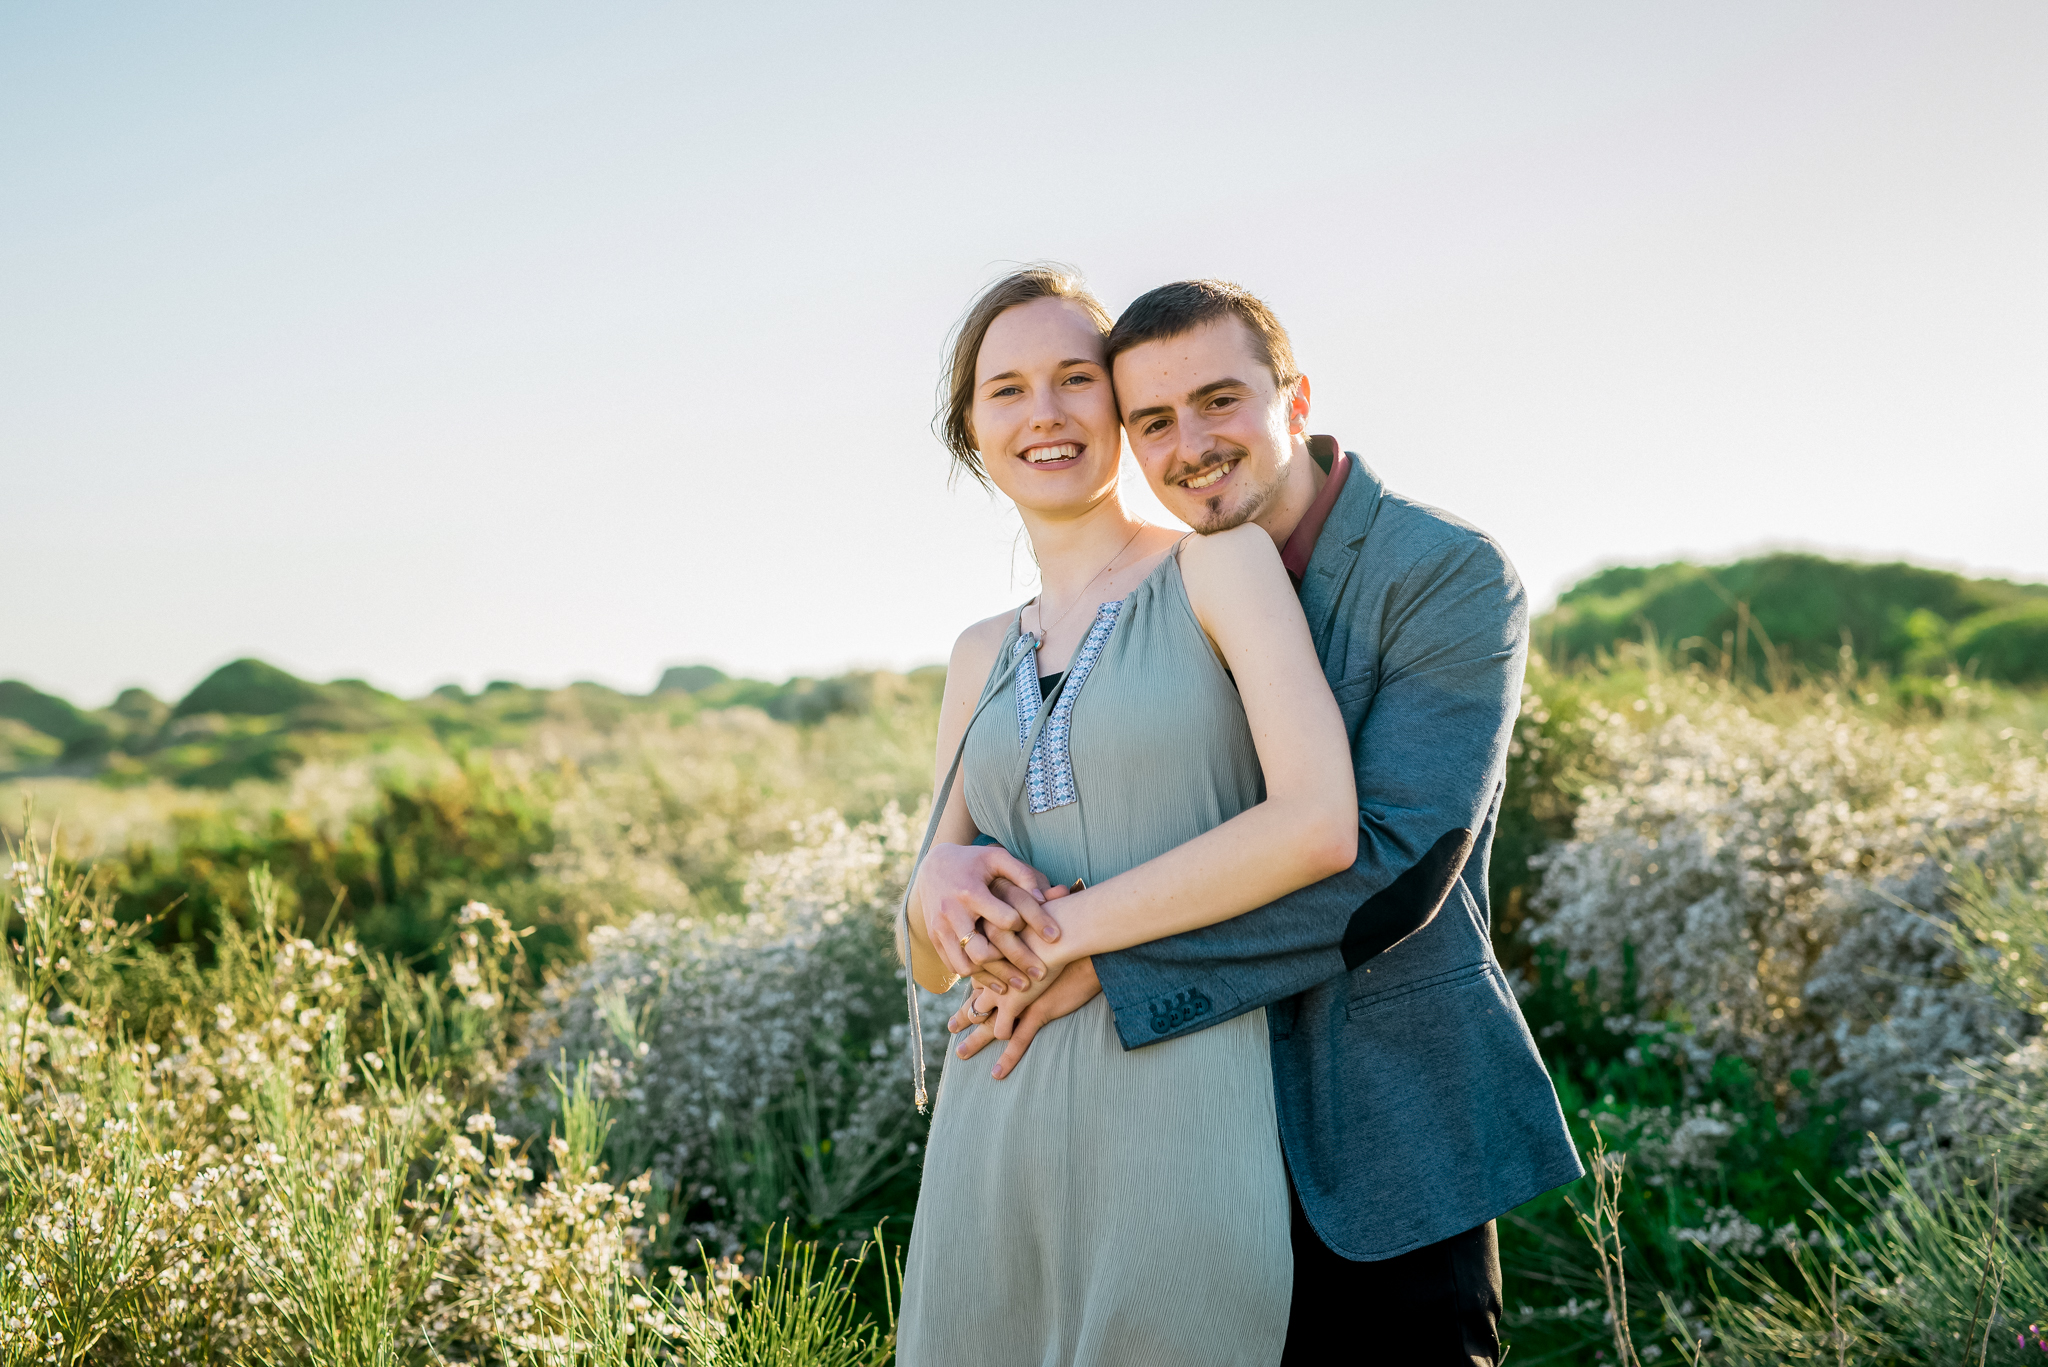 Cliffside-beach-engagement-session-hadera-israel-kate-giryes-photography-9097.jpg